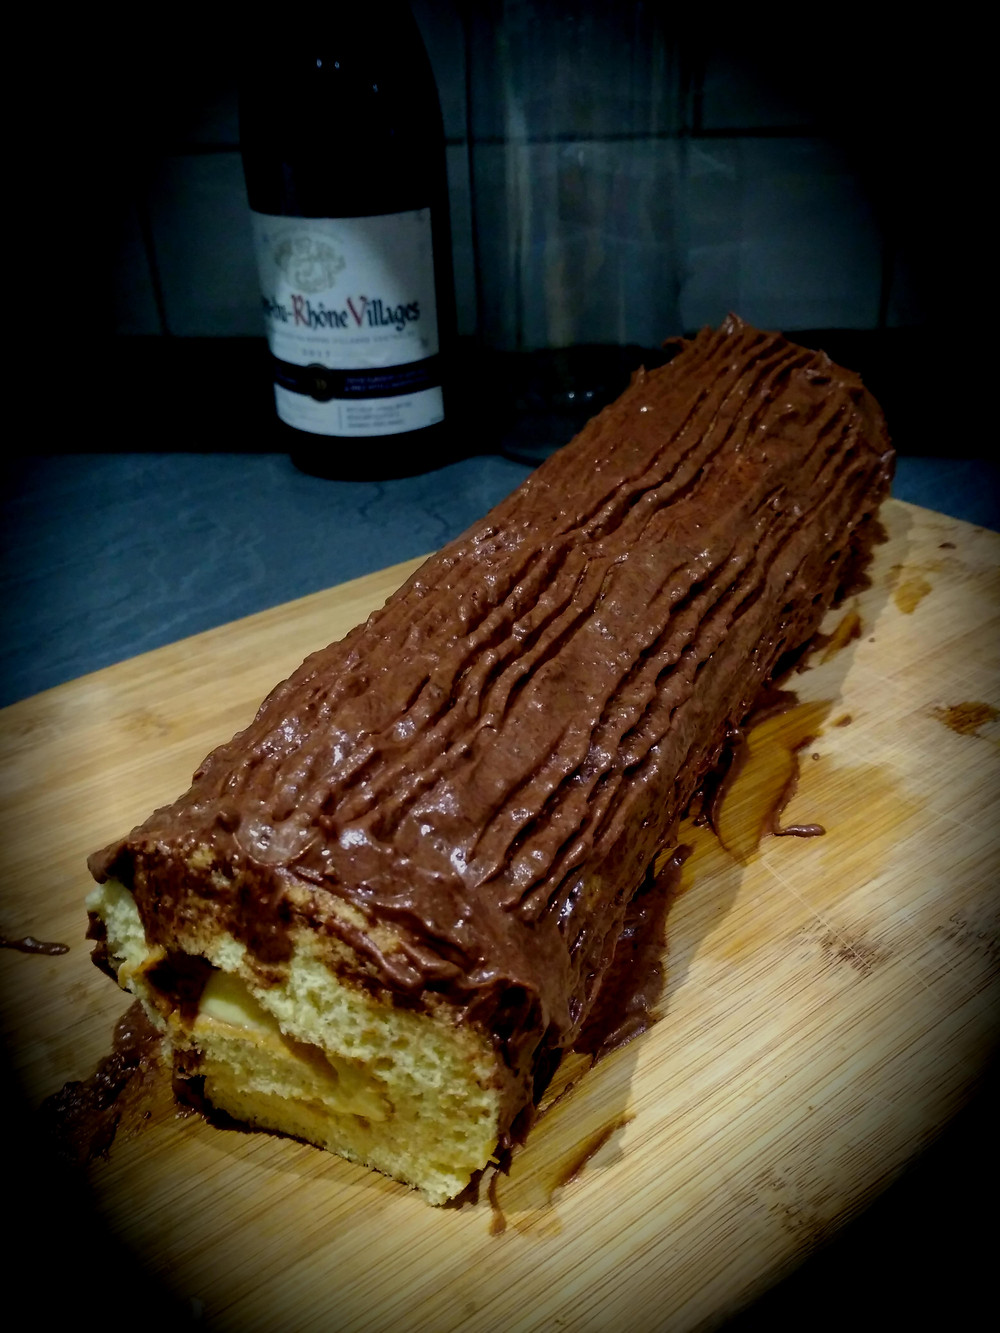 Picture of the cooked chocolate yule log